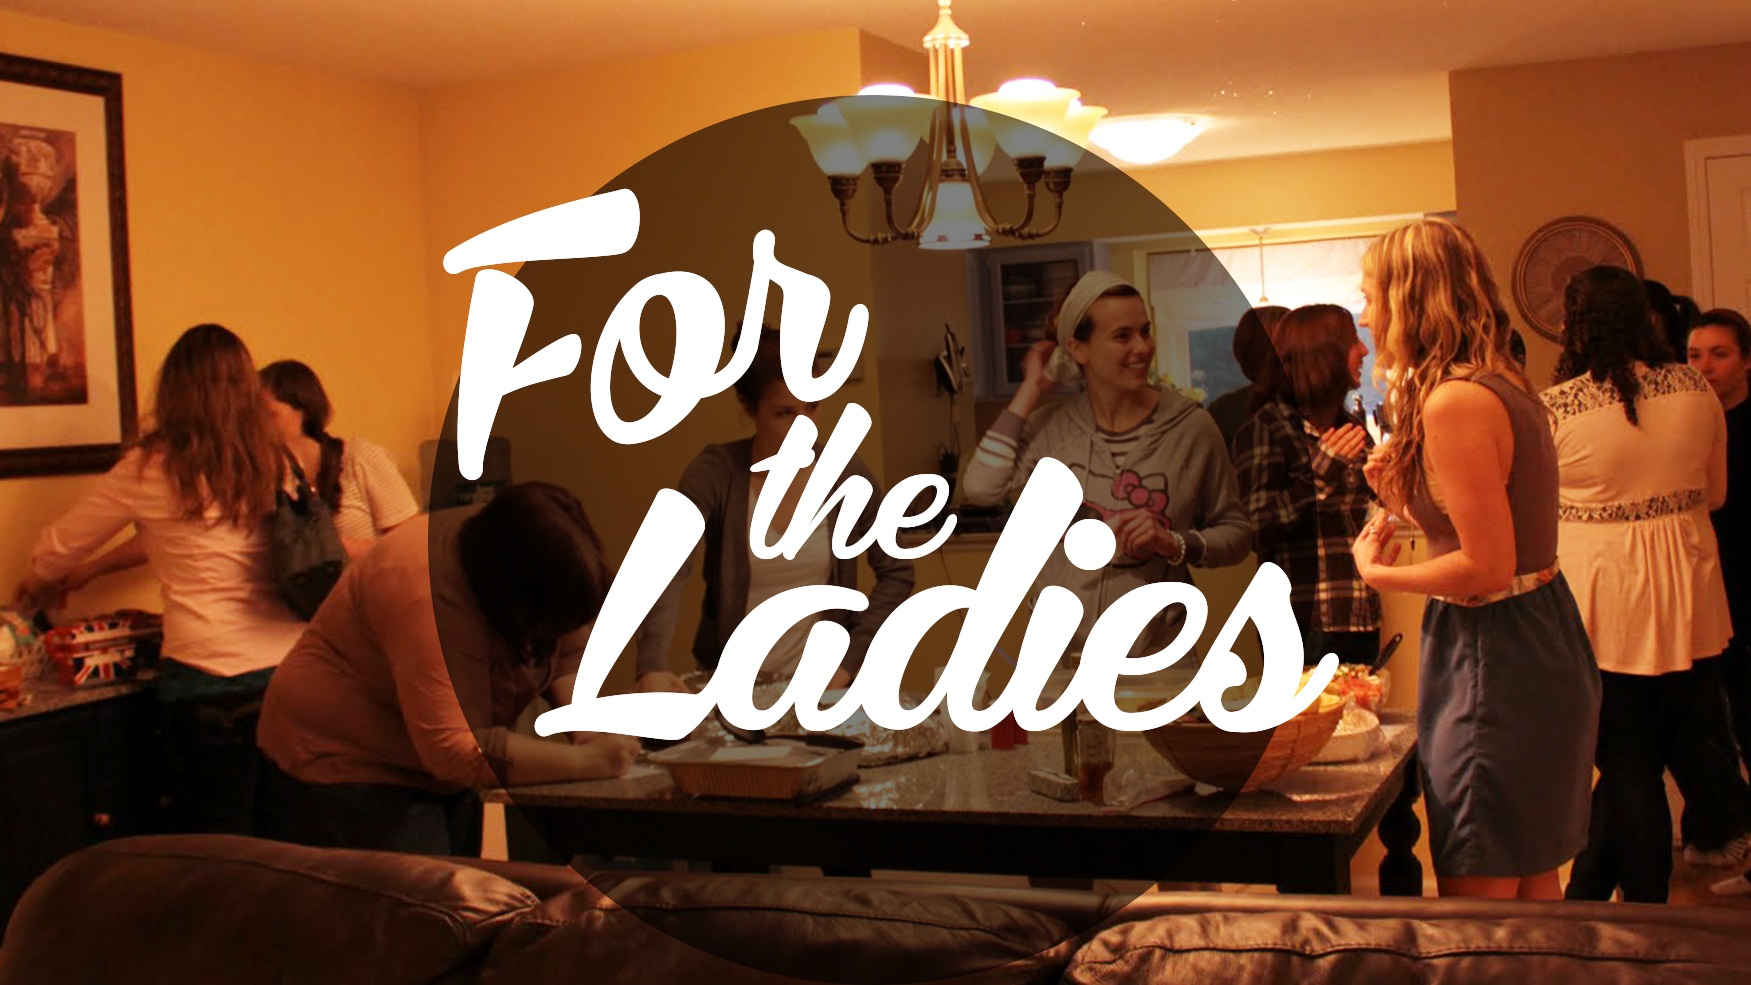 For The ladies - Join the women of Red Hills church Tuesday, November 8th at 6:30 pm for dinner and fellowship. To get more information, click the link below.